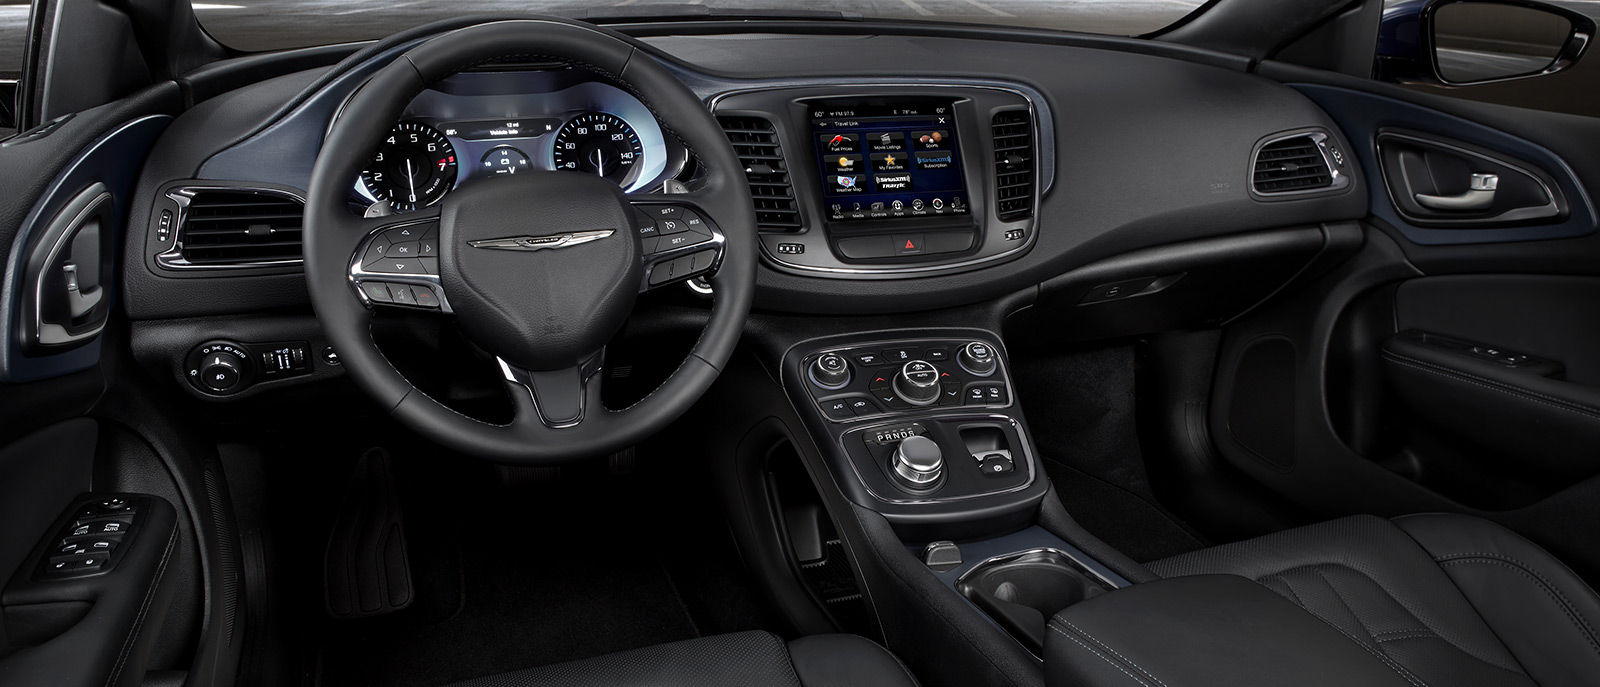 2016 Chrysler 200 Black Leather Interior